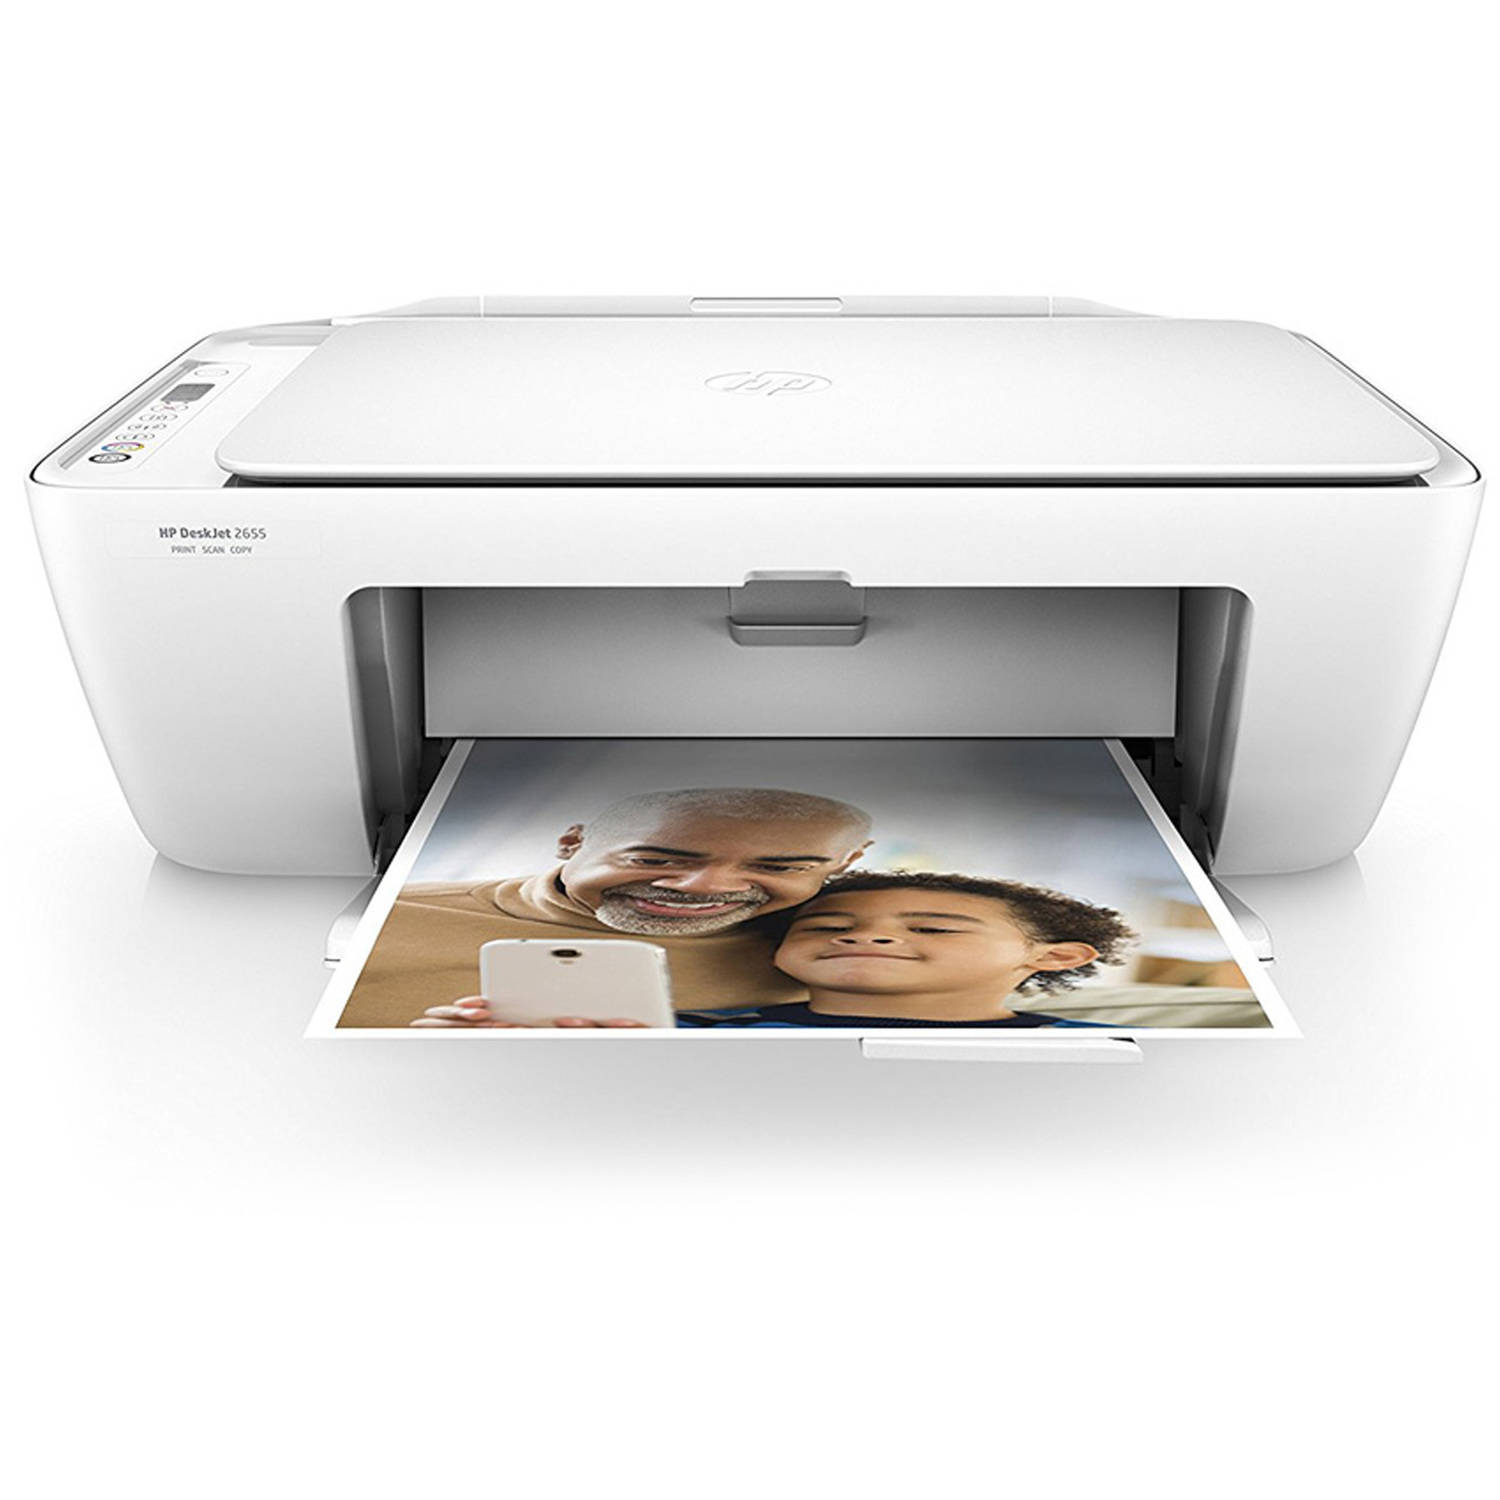 HP DeskJet 2655 All-in-One Printer (Blue)